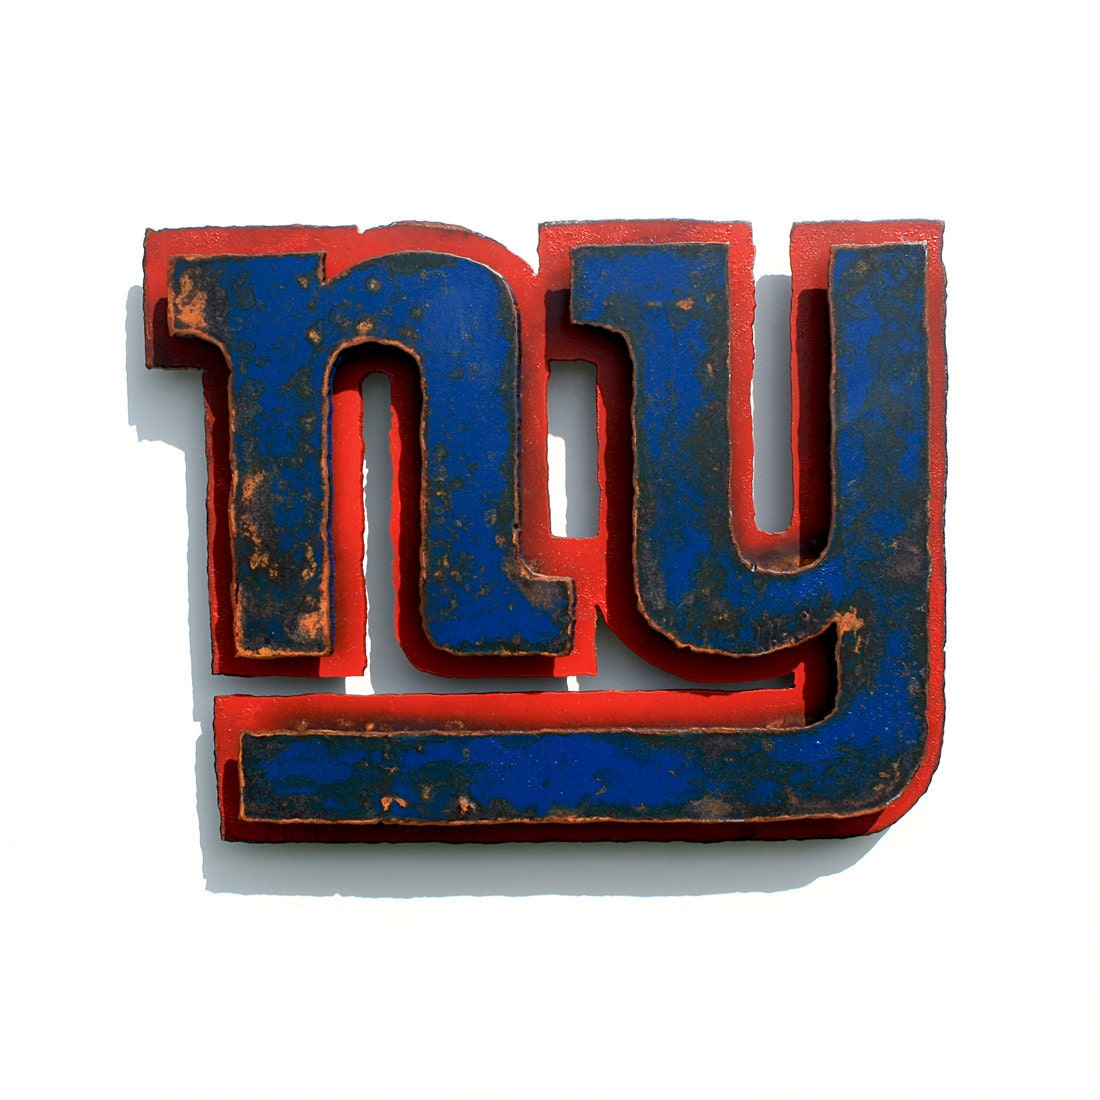 New York Giants 3D wall art metal emblem by FunctionalSculpture